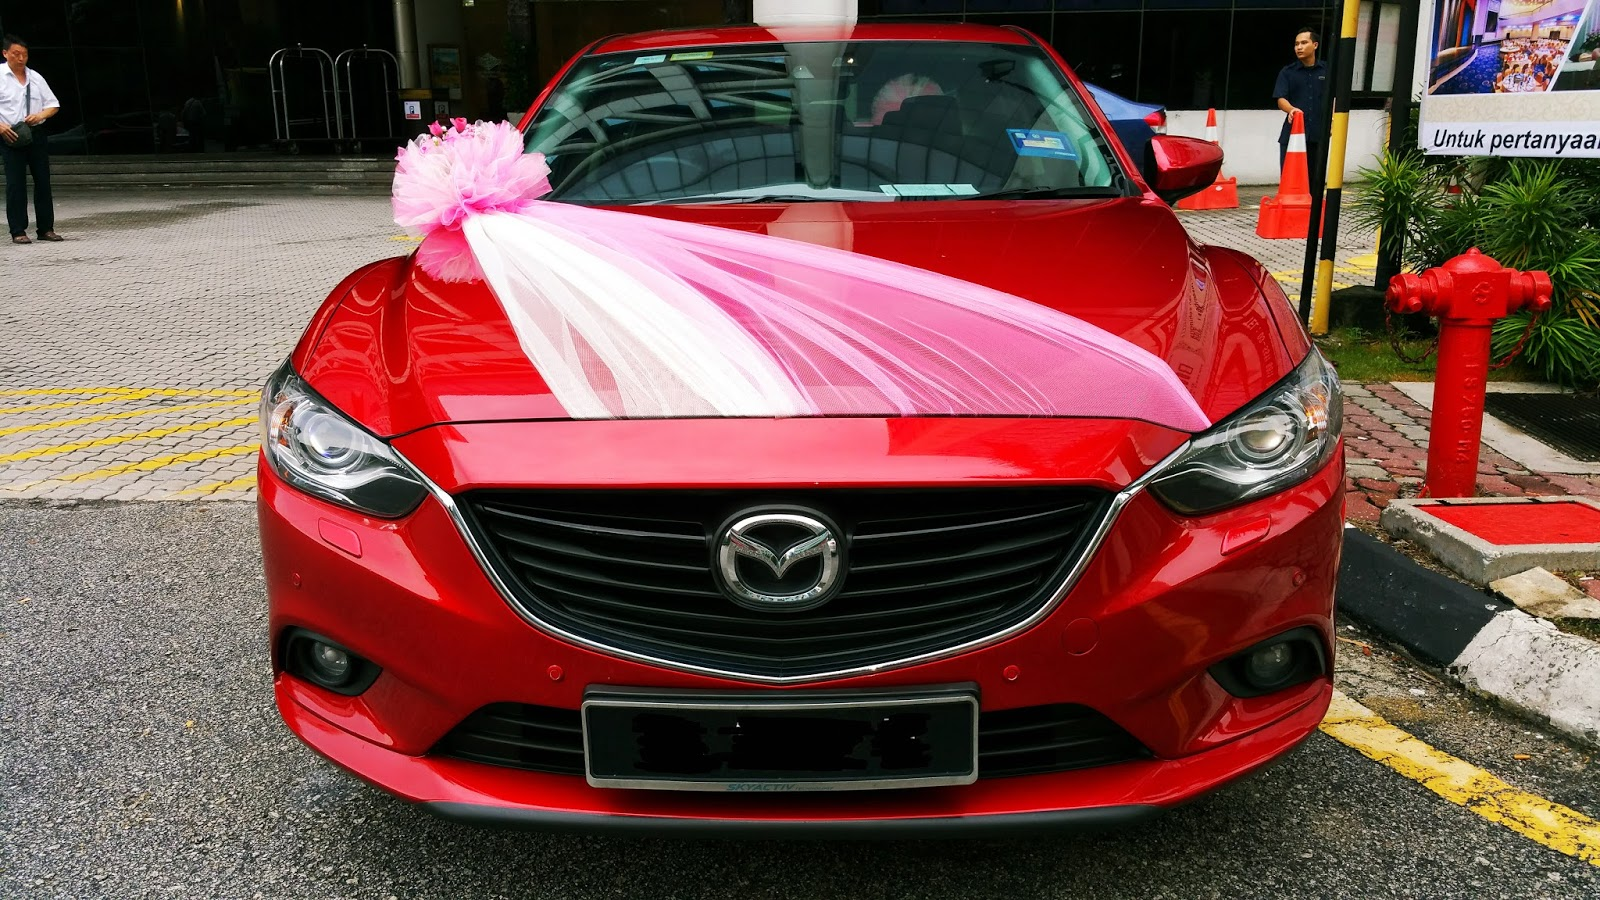 RedOrca Malaysia Wedding and Event Car Rental Wedding car